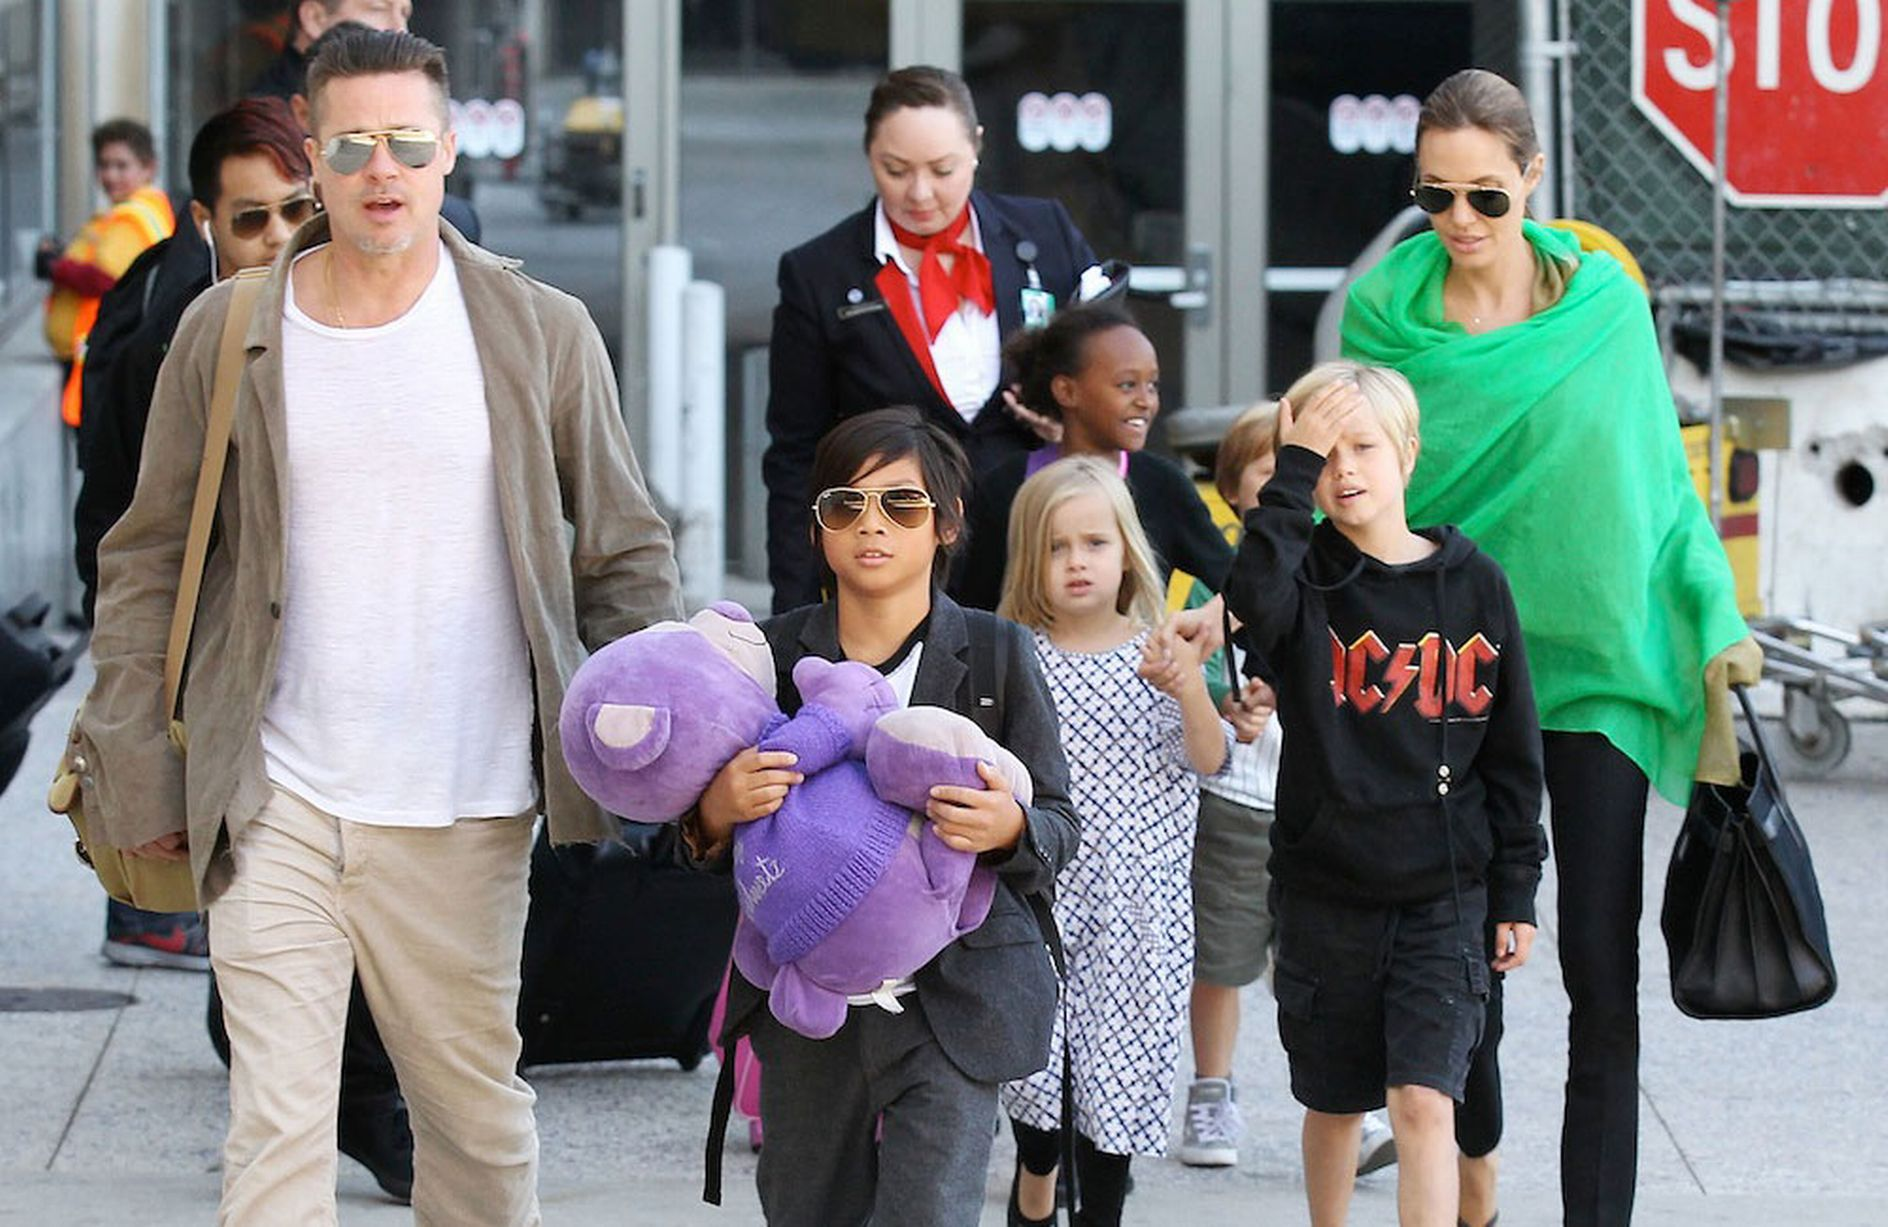 Brad-Pitt-Angelina-Jolie-and-family-arriving-at-the-Los-Angeles-International-Airport-MAIN